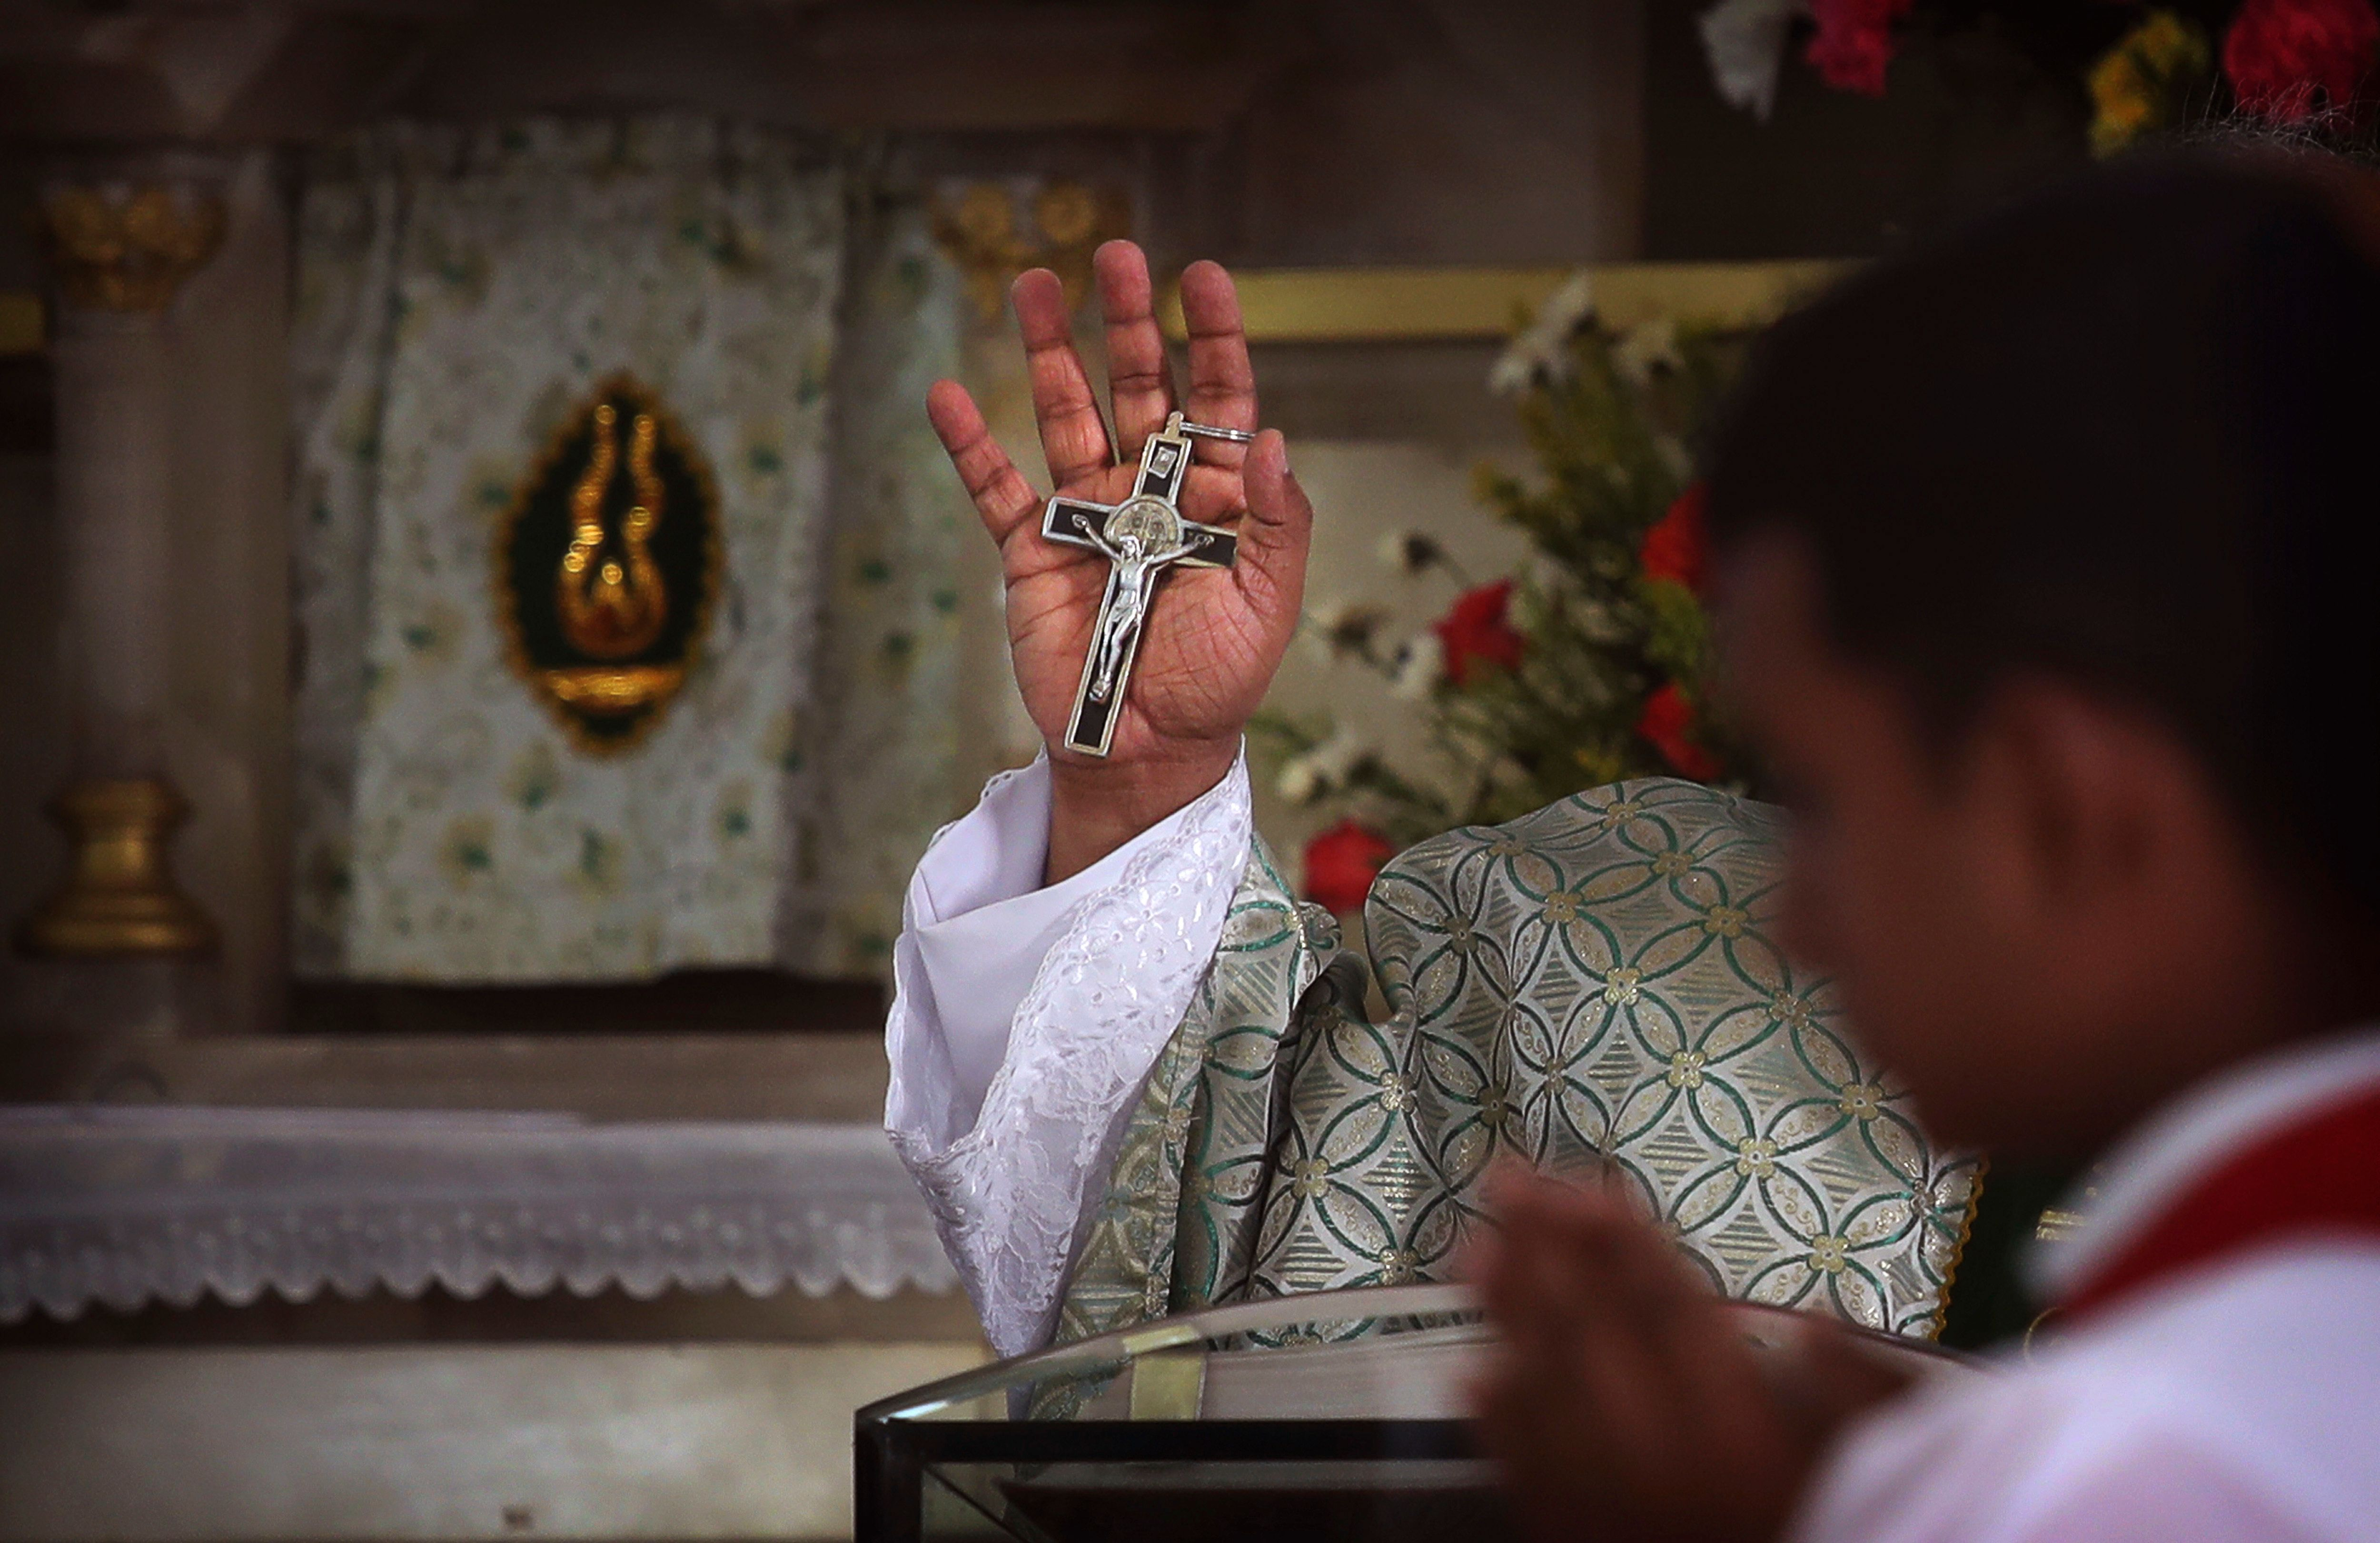 In this Sunday, Nov. 4, 2018, photo, a Catholic priest conducts Sunday mass at the Immaculate Heart of Mary Cathedral, in Kottayam in the southern Indian state of Kerala. An AP investigation has uncovered a decades-long history of nuns in India enduring sexual abuse from within the Catholic church. (AP Photo/Manish Swarup)